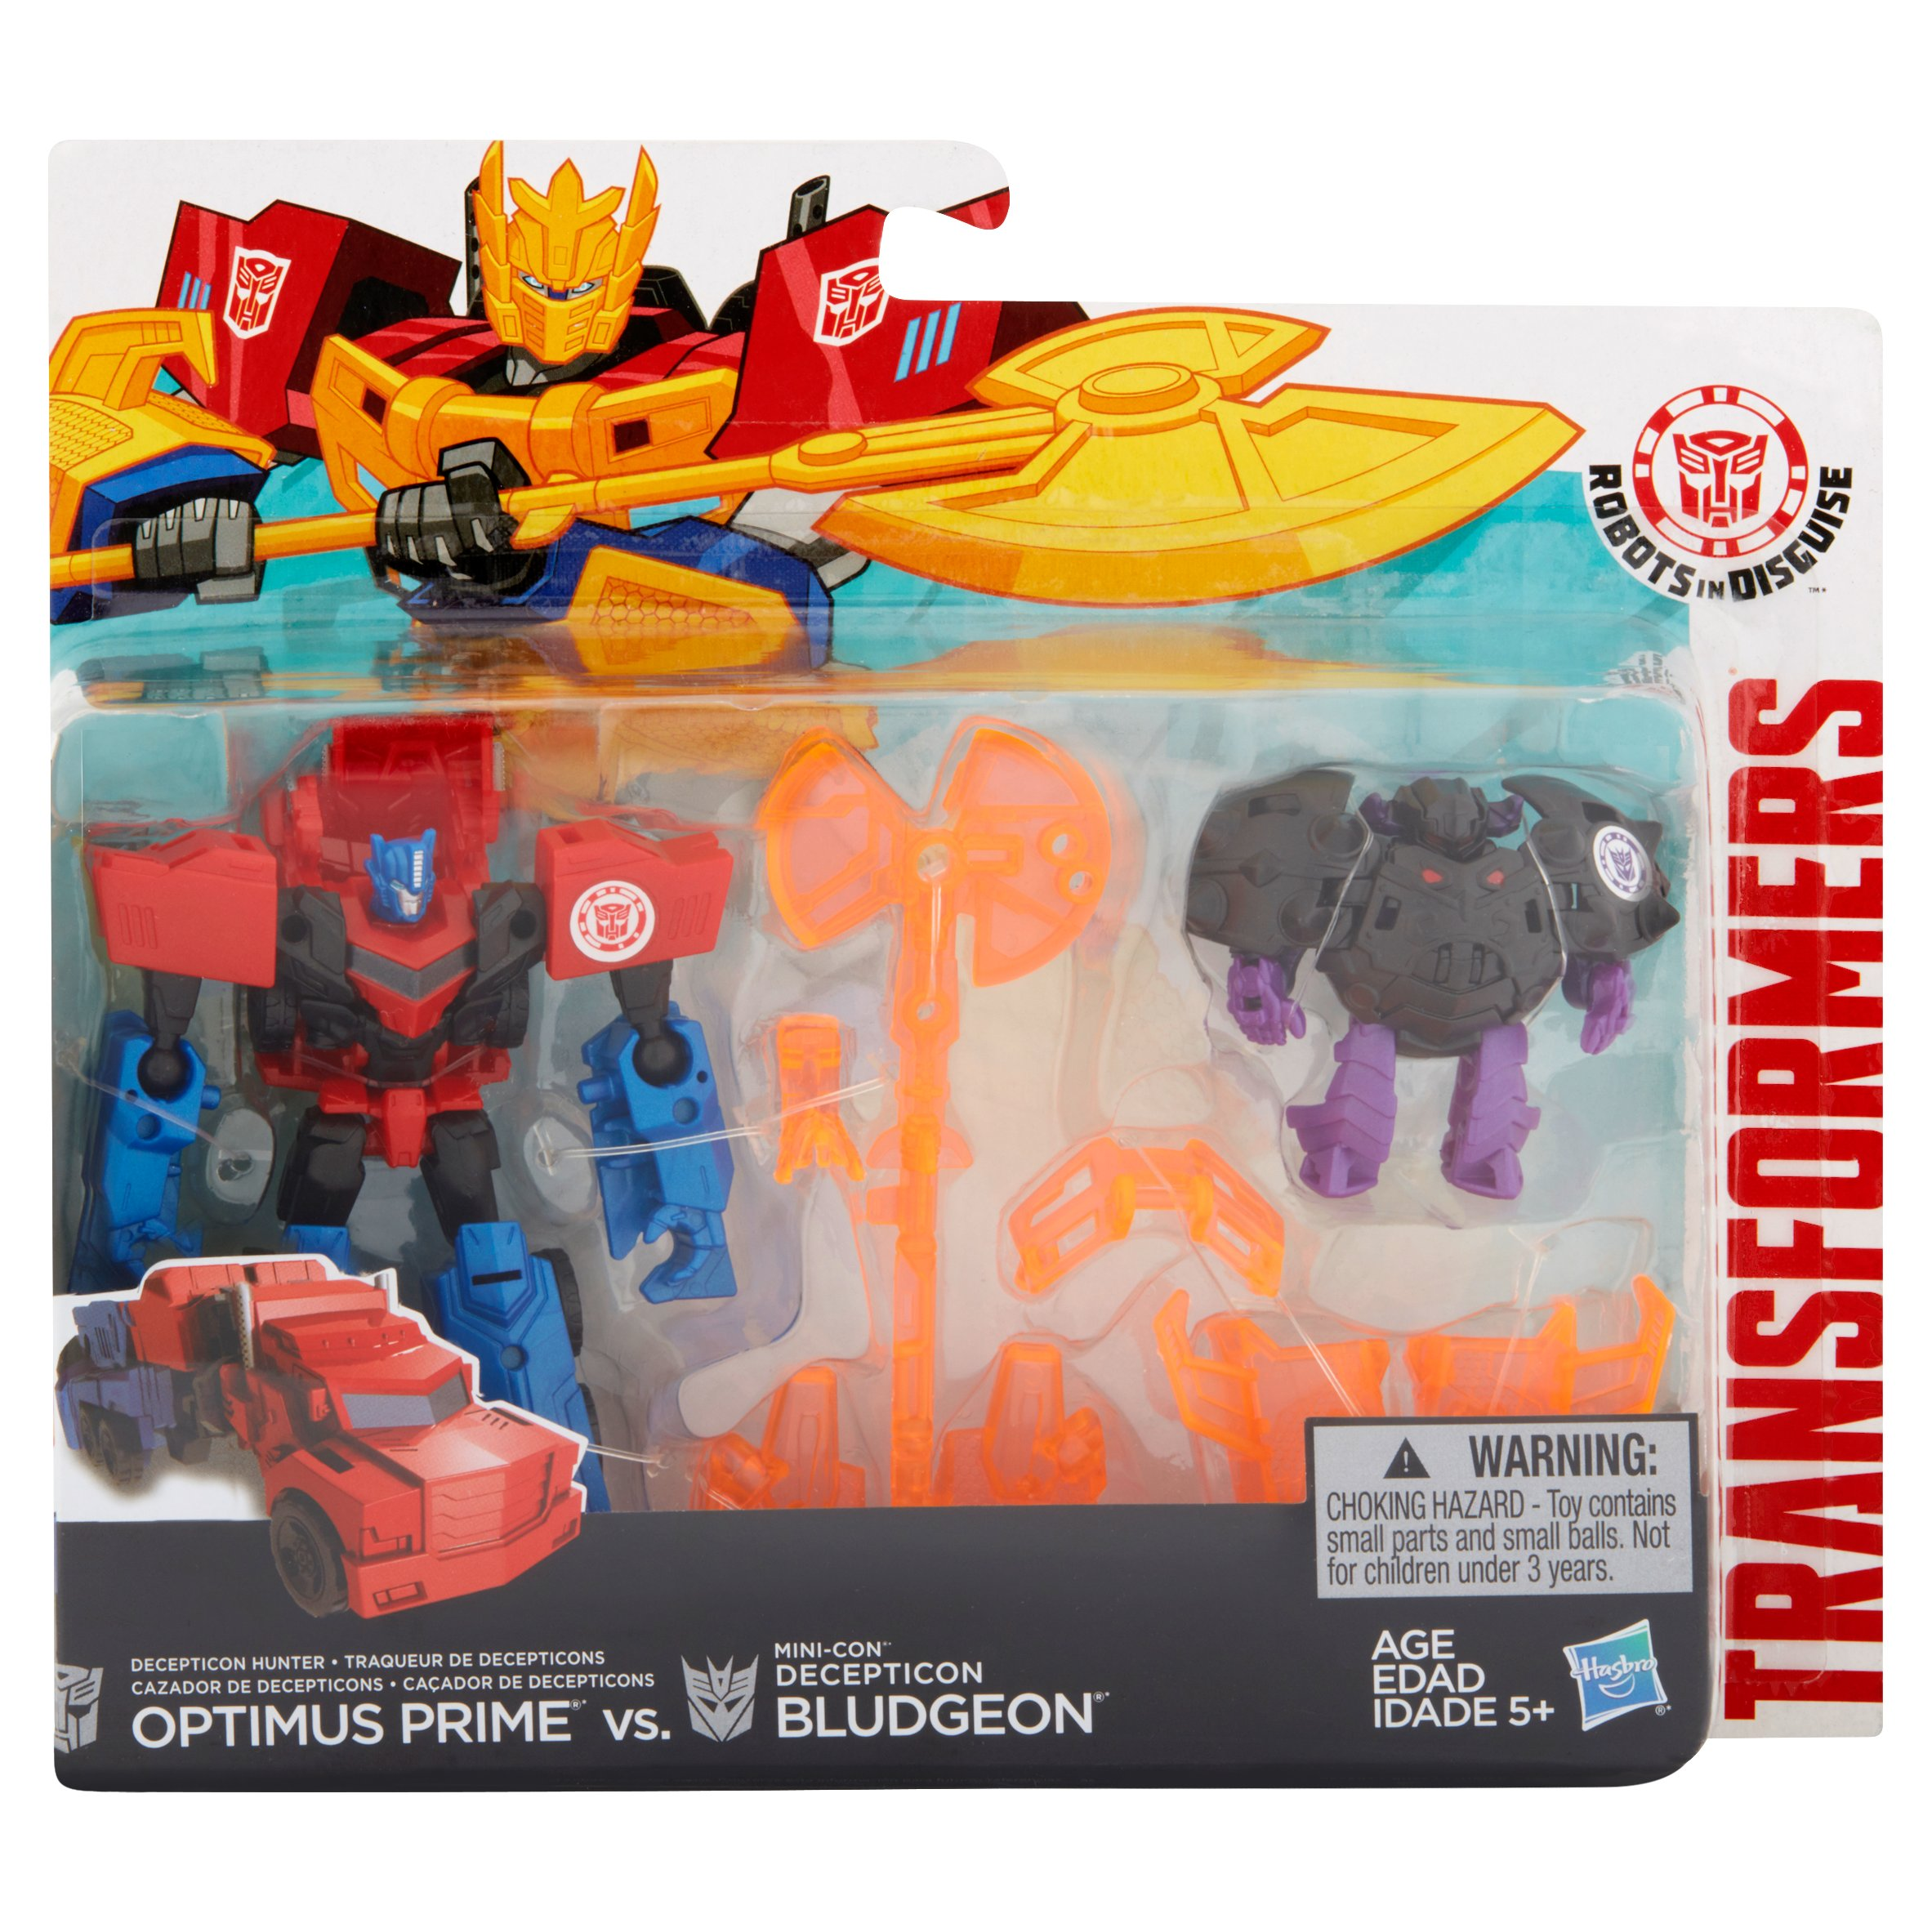 Hasbro Transformers Robots in Disguise Age 5+ by Hasbro